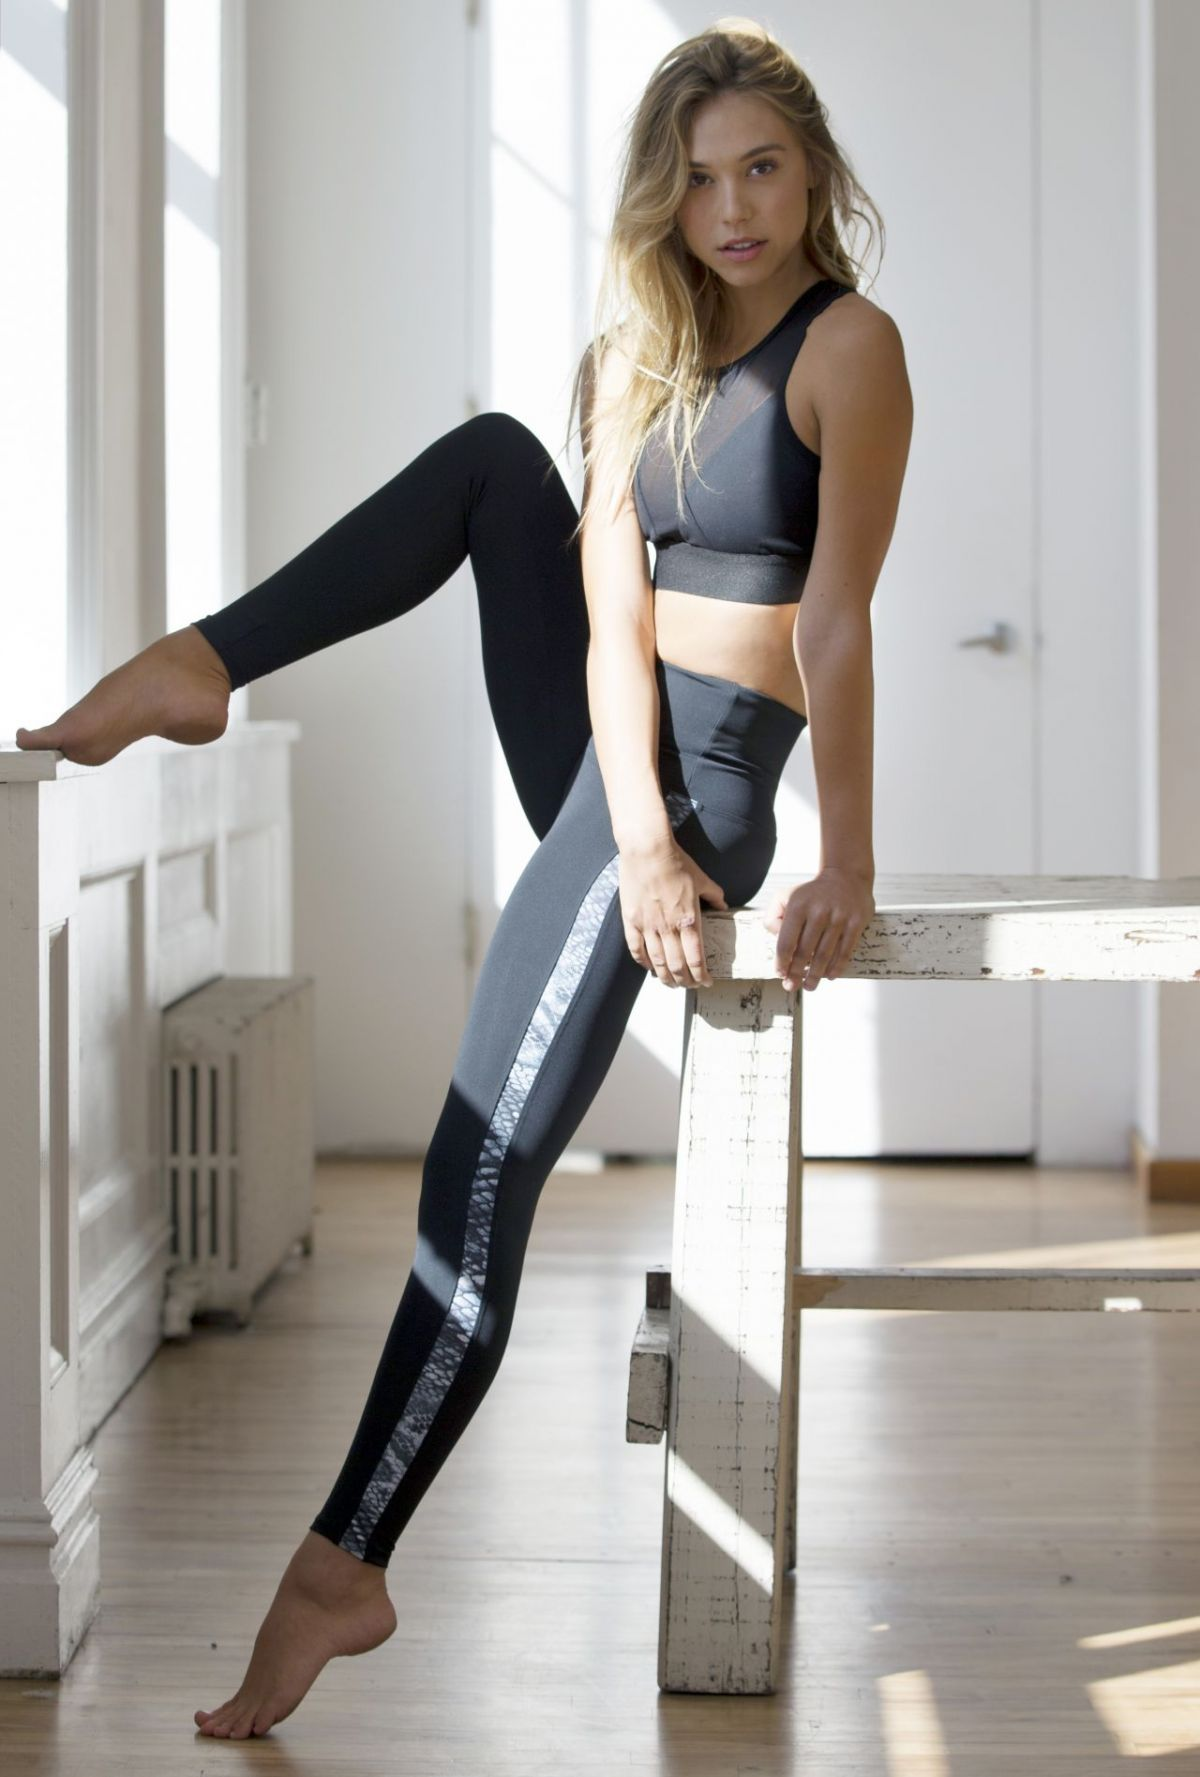 ALEXIS REN for Alexis Ren x Bandier Workout Line